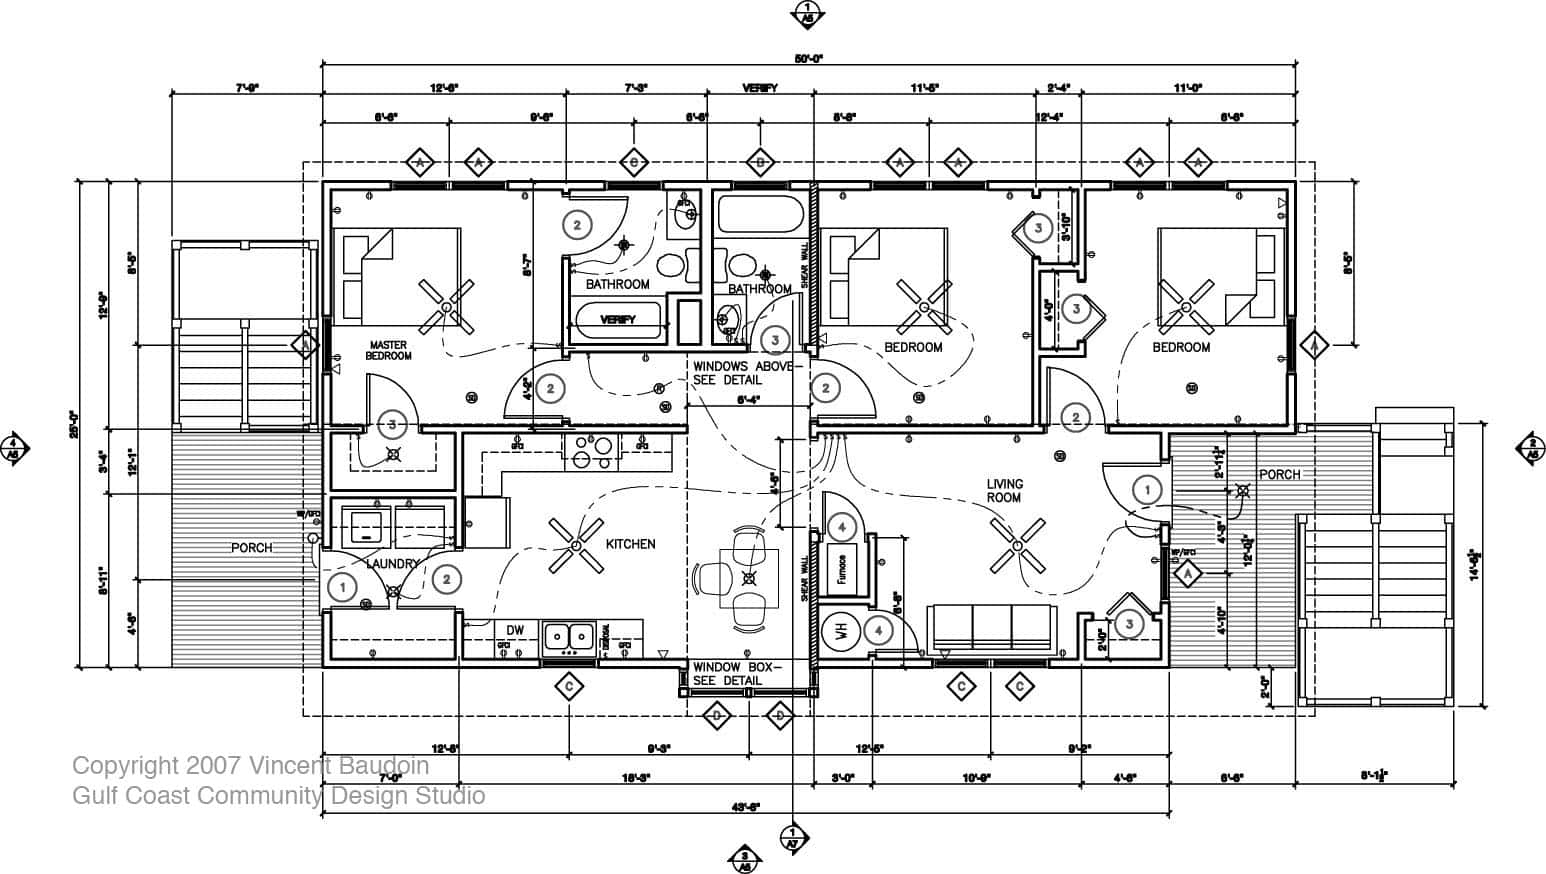 149_hoxie-final-a3-floor-plan